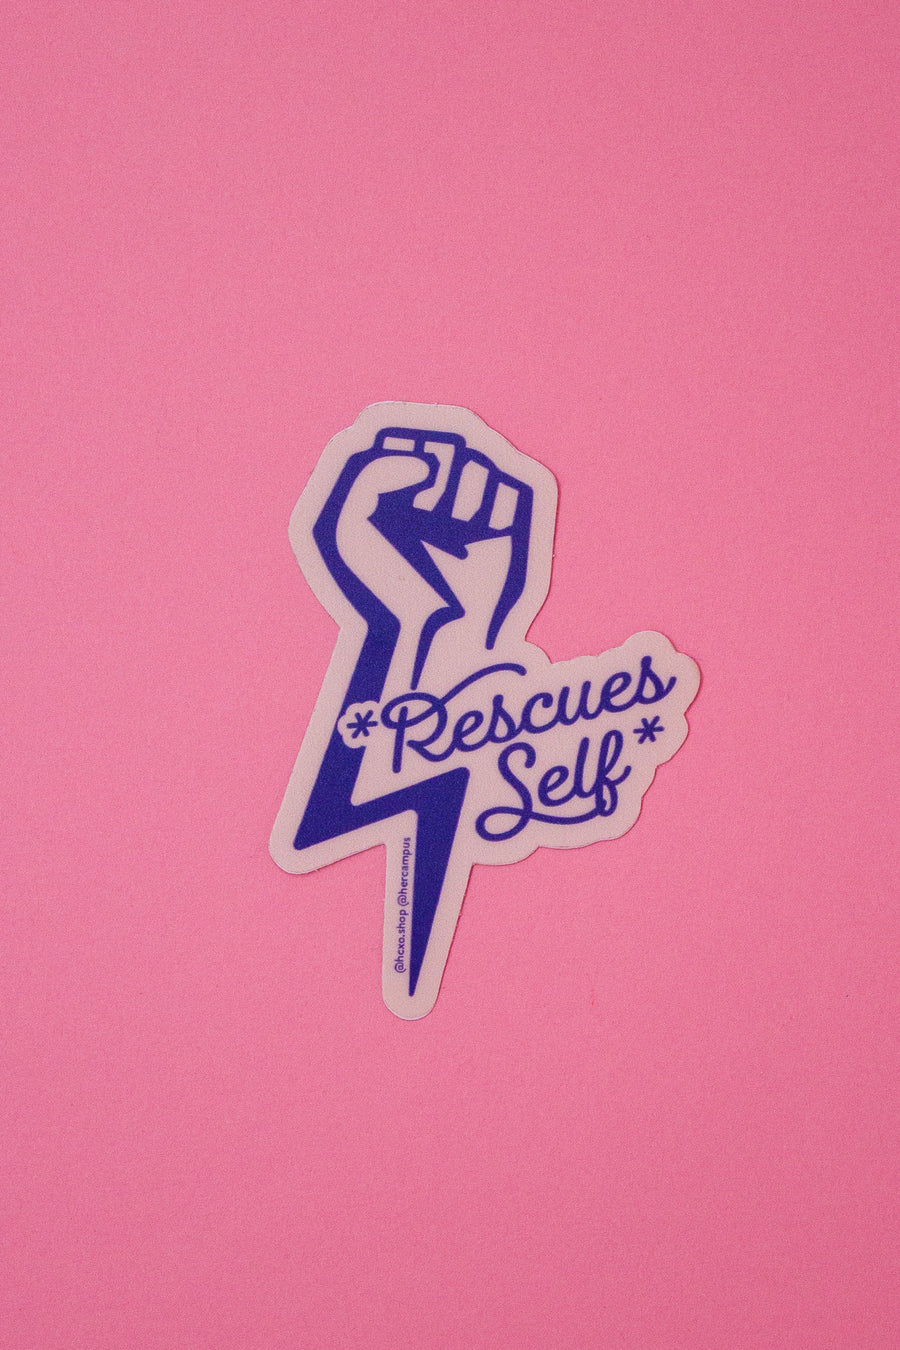 *Rescues Self* Sticker